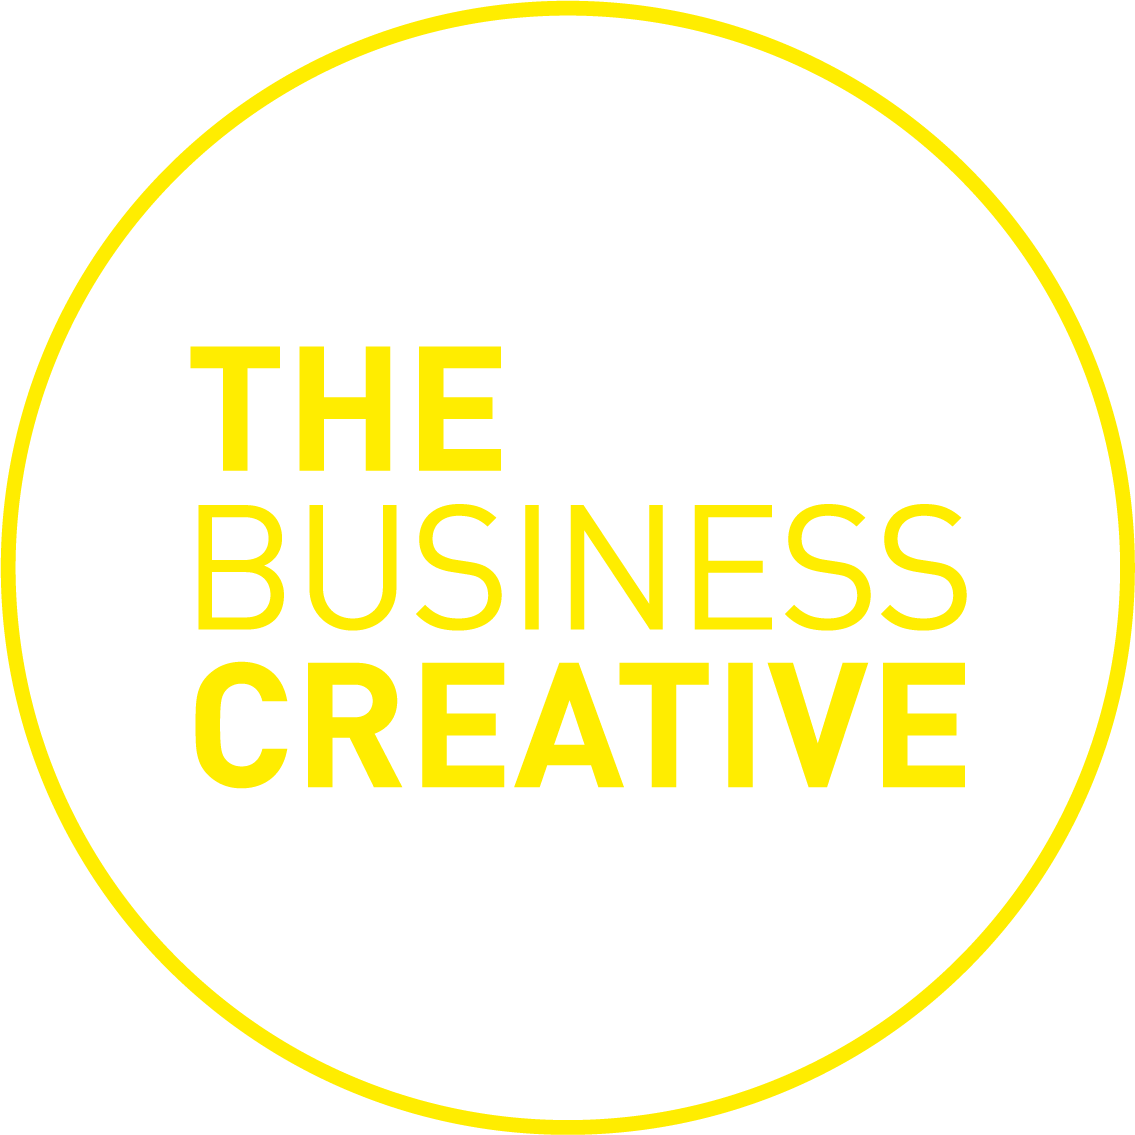 The Business Creative